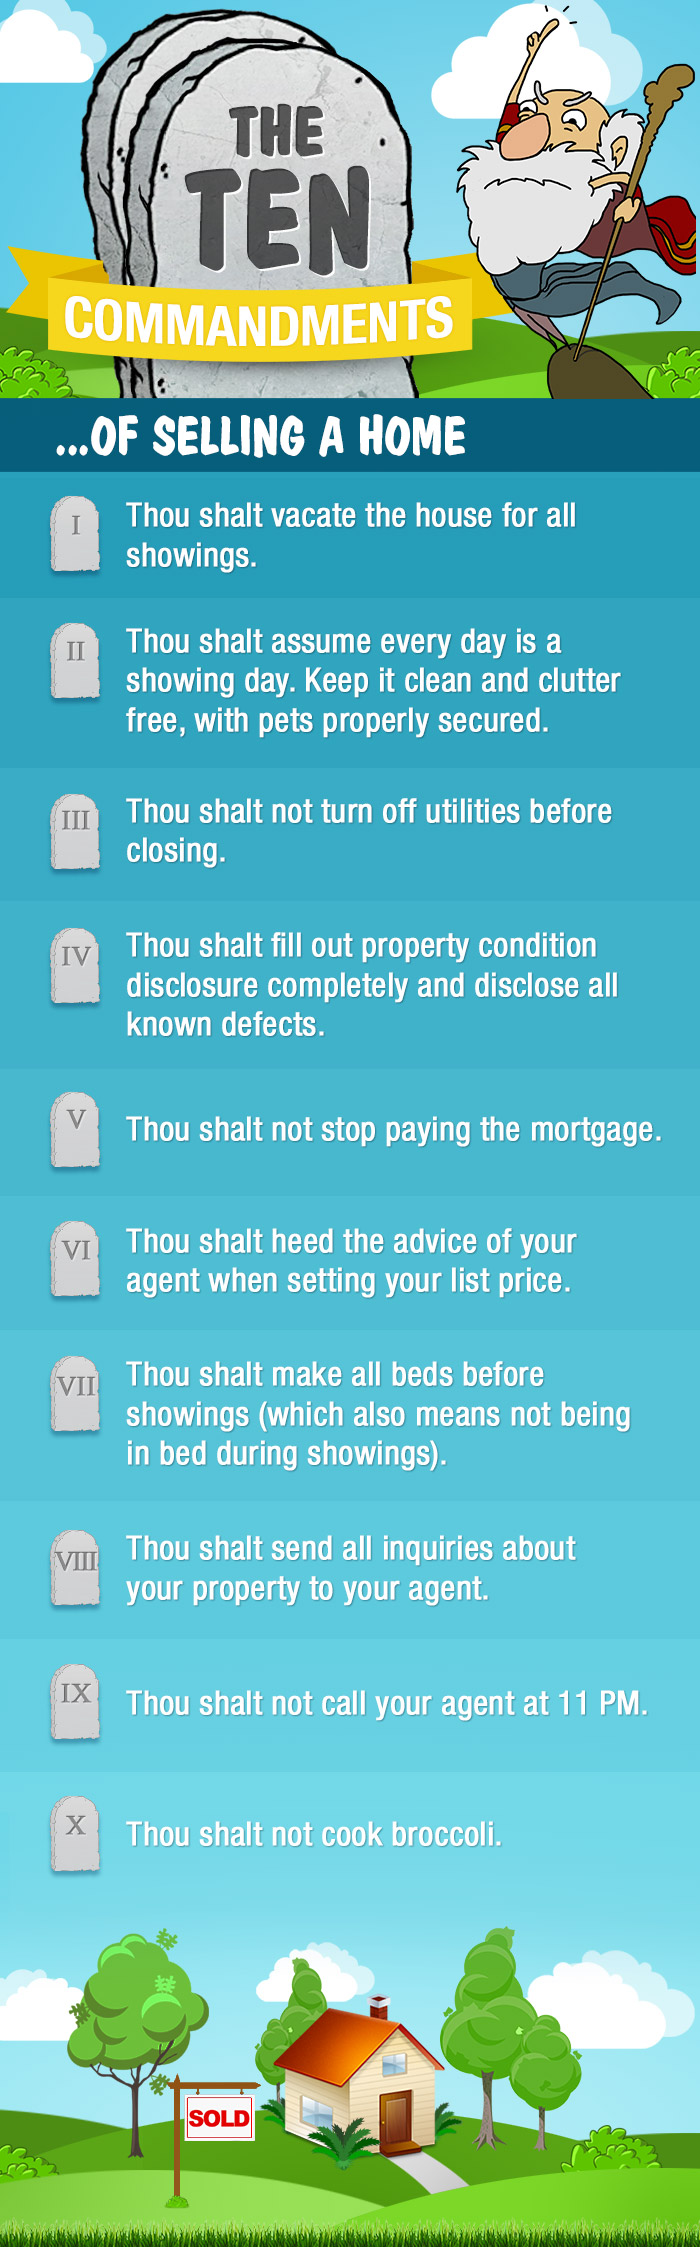 The 10 commandments of selling your Charlotte home for sale